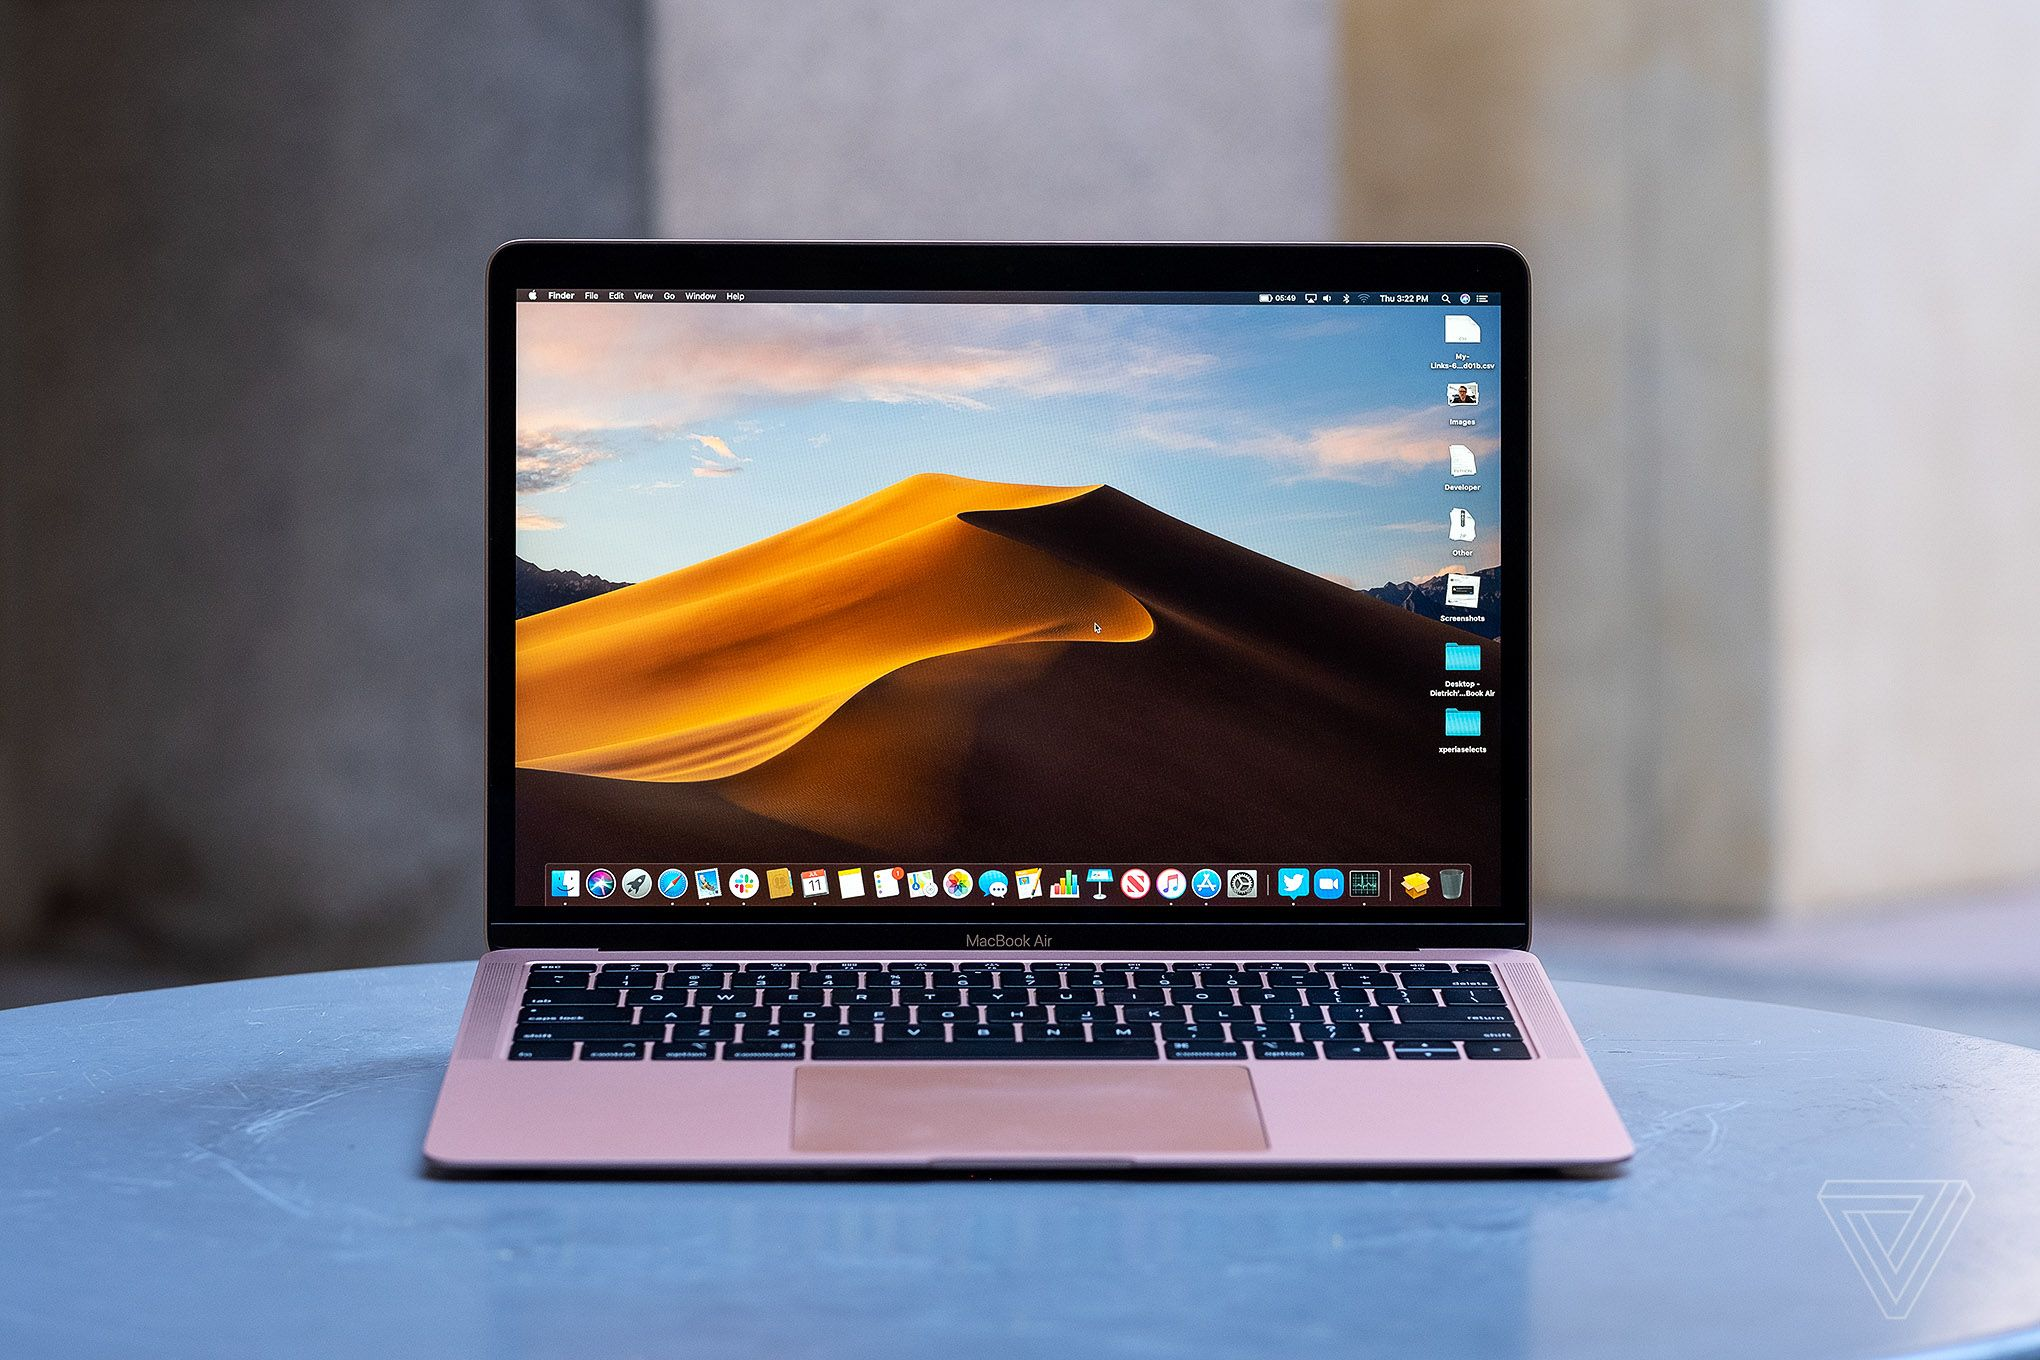 The All New Macbook Air With Retina Display Available With Student S Discount At Apple Authorized Stores In India Visit Your Neares Laptop College Fun Macbook